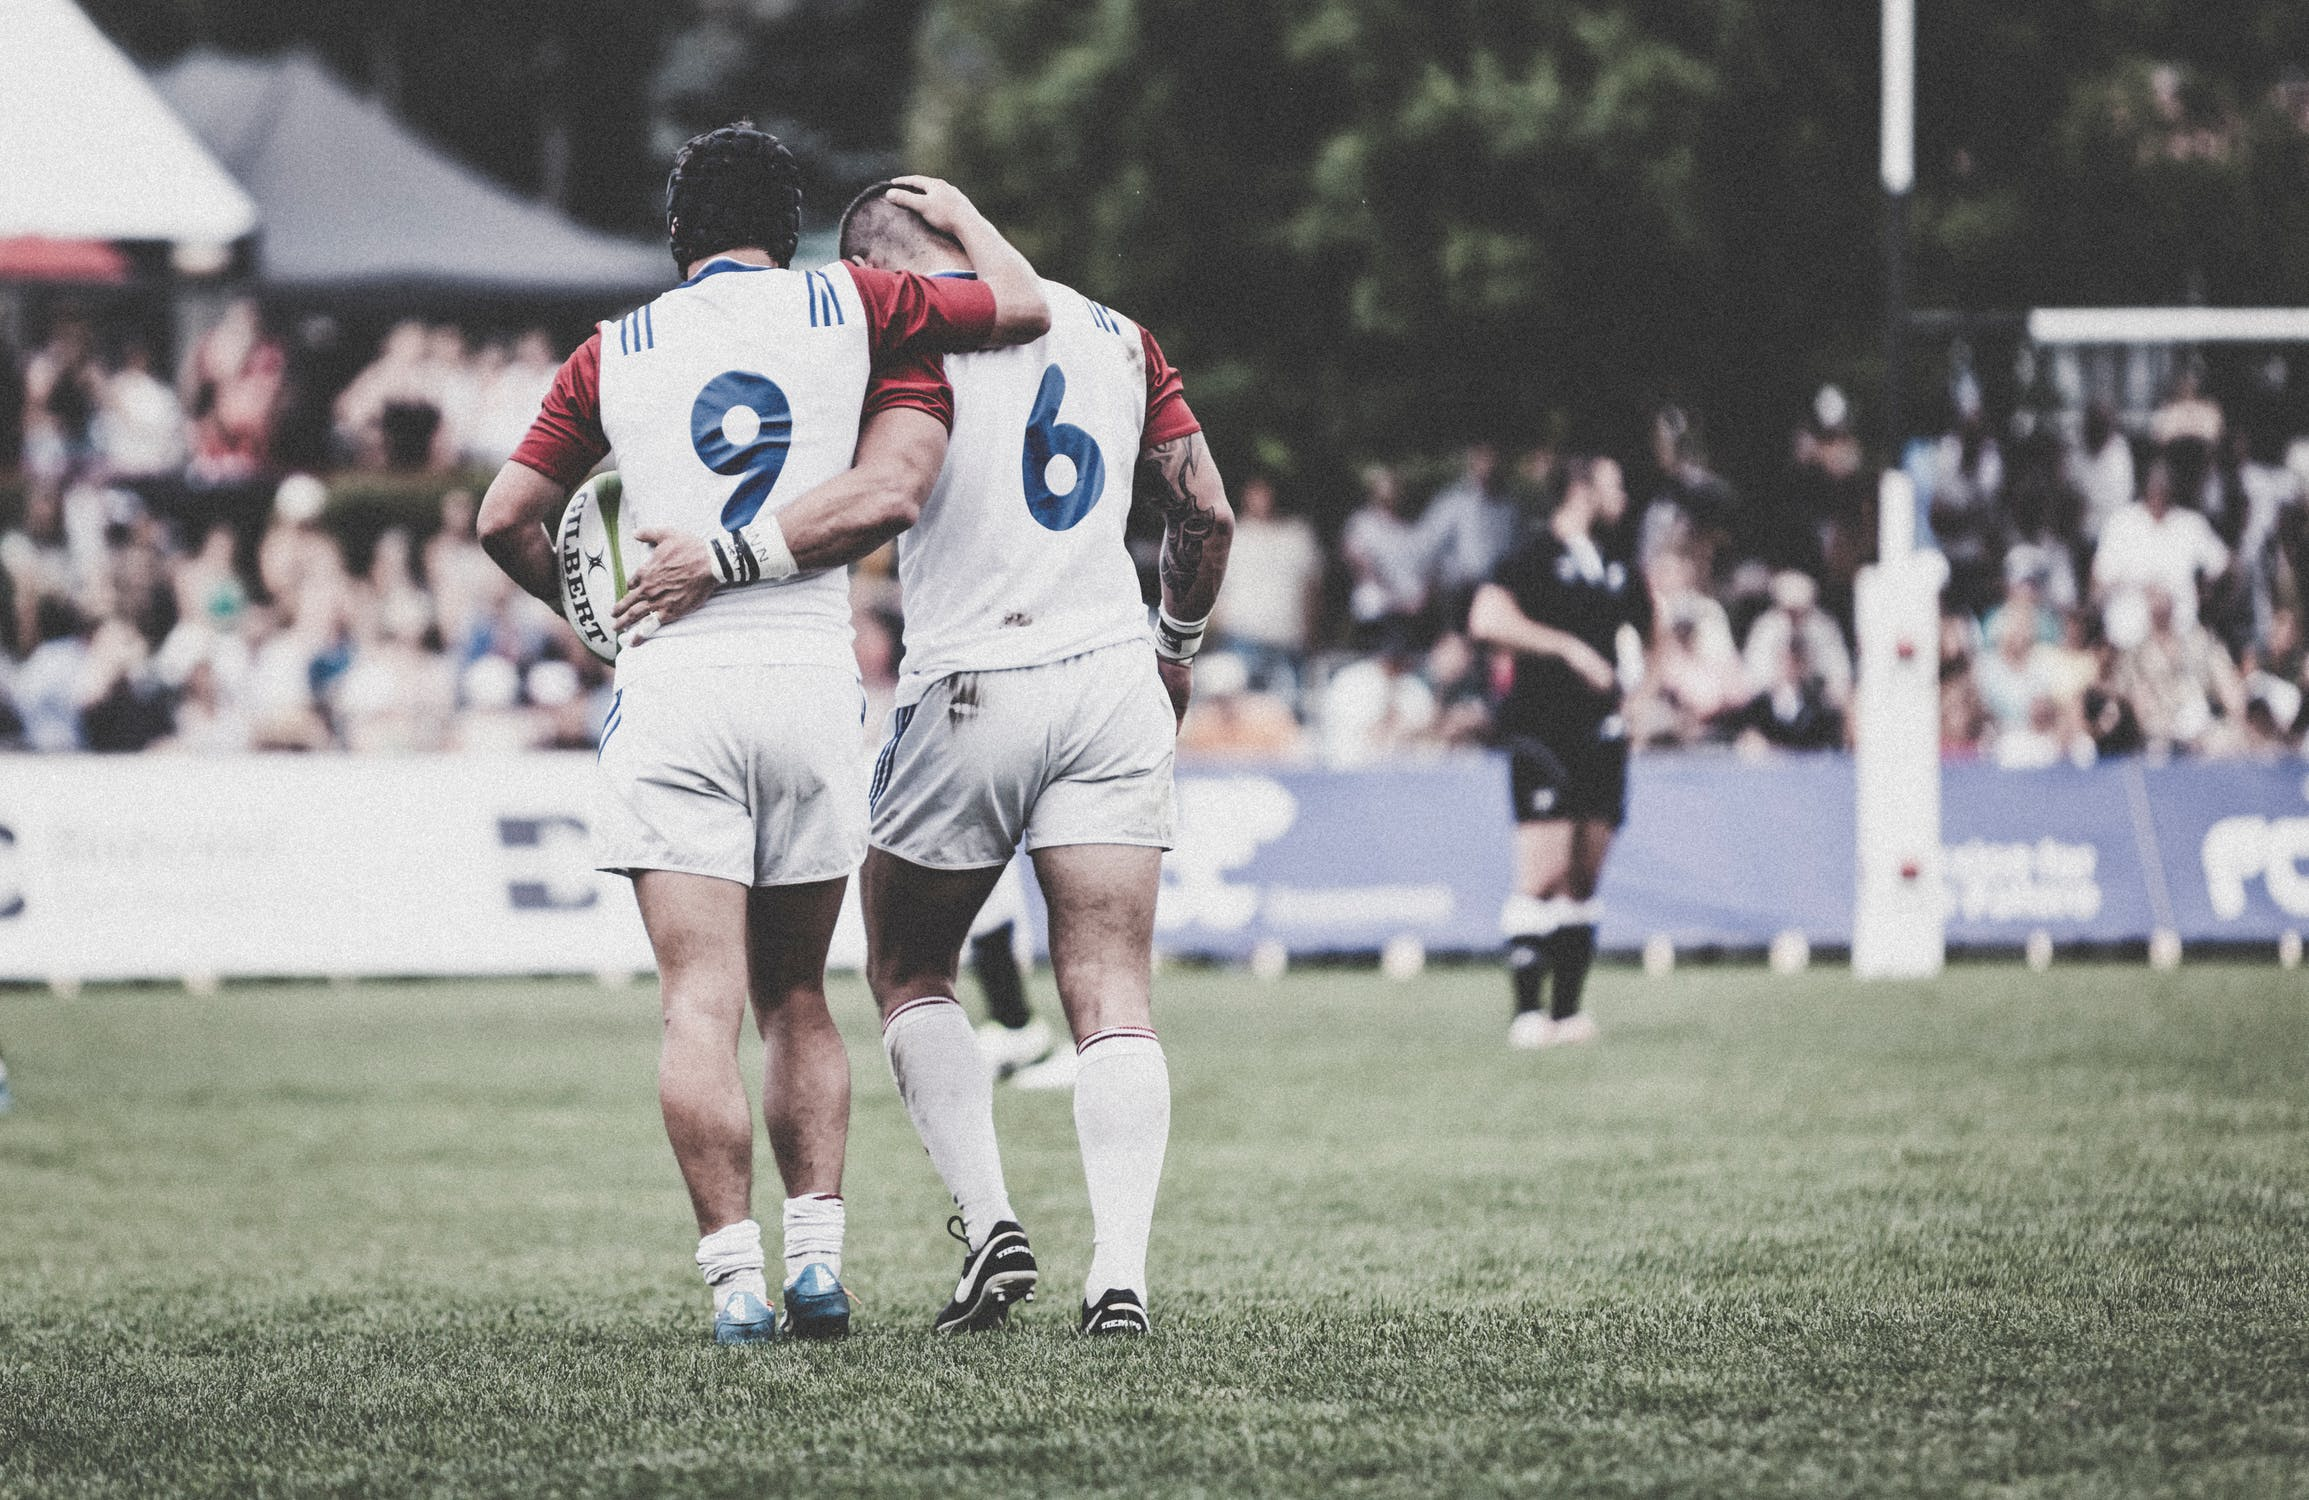 The Sports Archives Blog - The Sports Archives - Thinking Of Taking Up Rugby?